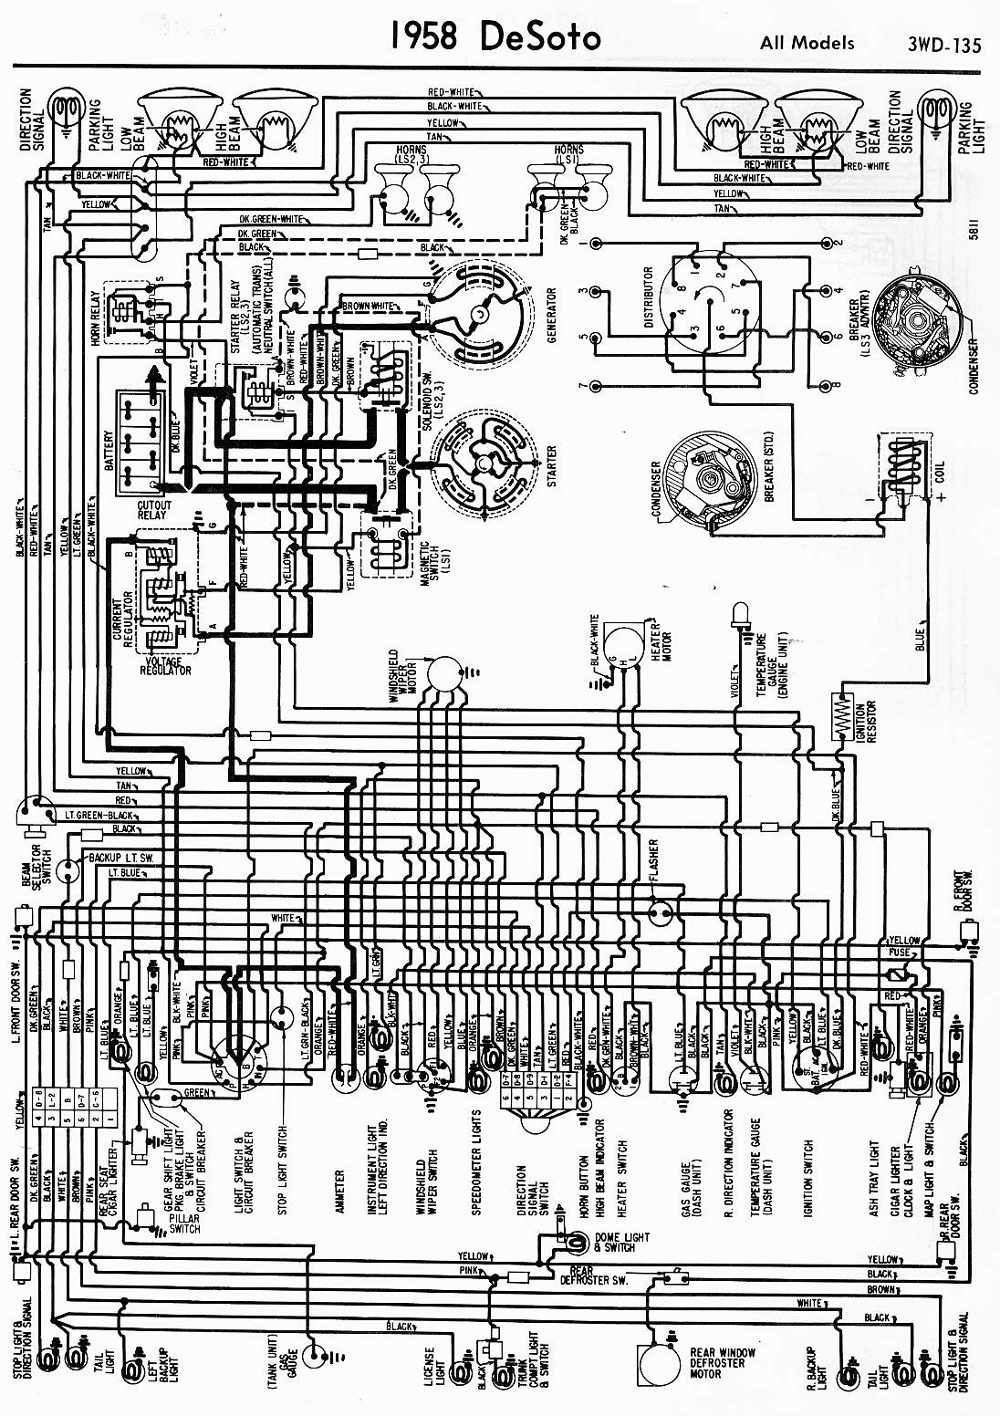 hight resolution of  outstanding ford tractor wiring diagram adornment the wire wiring diagrams of 1958 desoto all models ford